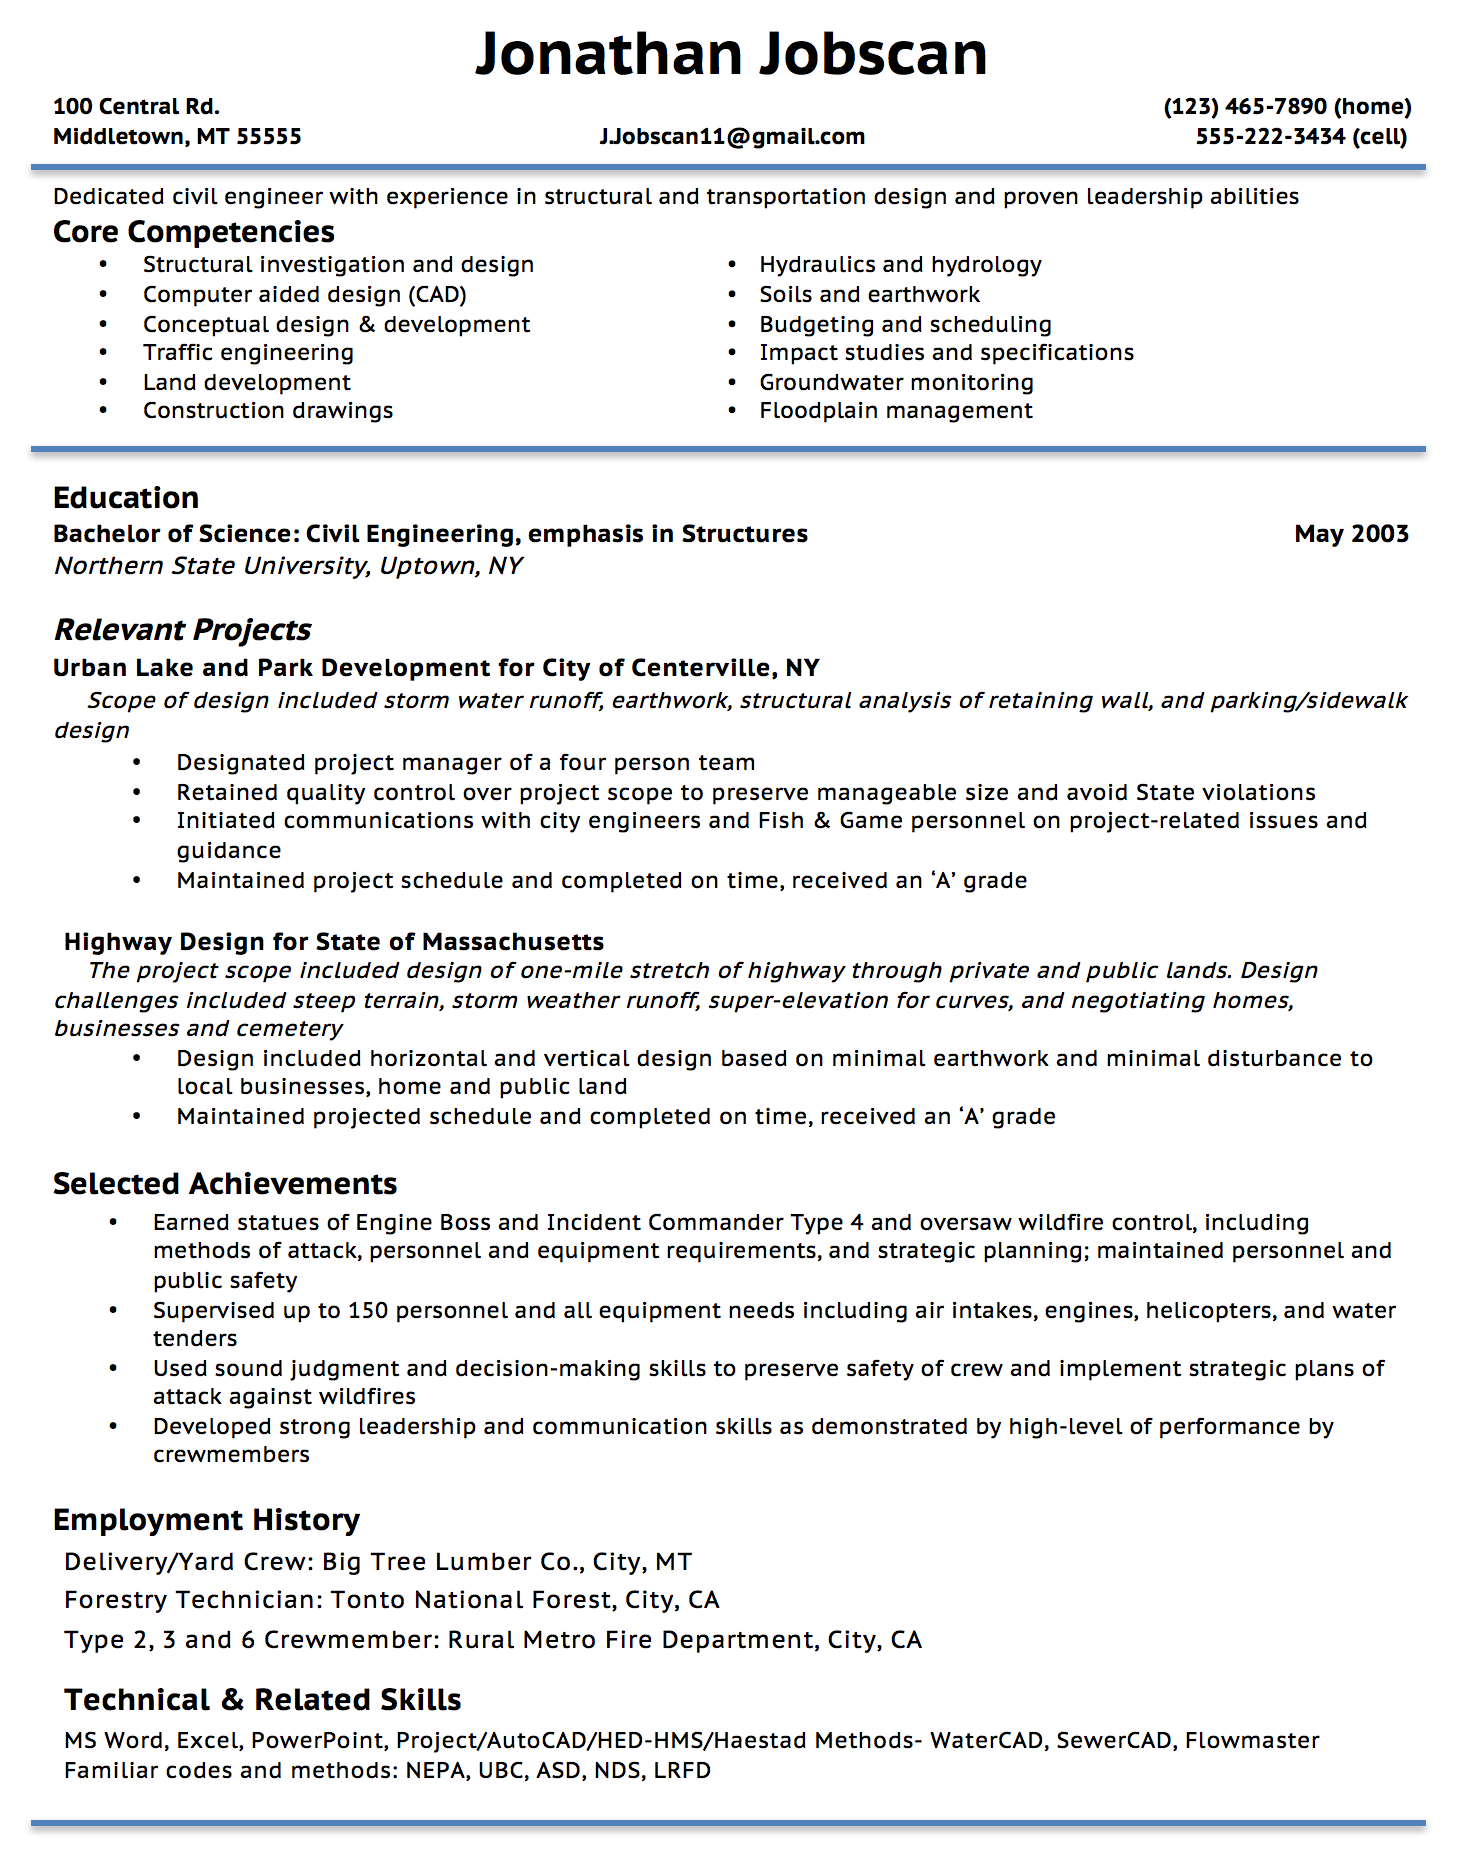 Opposenewapstandardsus  Stunning Resume Writing Guide  Jobscan With Interesting Example Of A Functional Resume Format With Amazing Rn Resume Sample Also Designer Resume In Addition High School Graduate Resume And Online Resume Template As Well As Make A Free Resume Additionally Example Of Cover Letter For Resume From Jobscanco With Opposenewapstandardsus  Interesting Resume Writing Guide  Jobscan With Amazing Example Of A Functional Resume Format And Stunning Rn Resume Sample Also Designer Resume In Addition High School Graduate Resume From Jobscanco